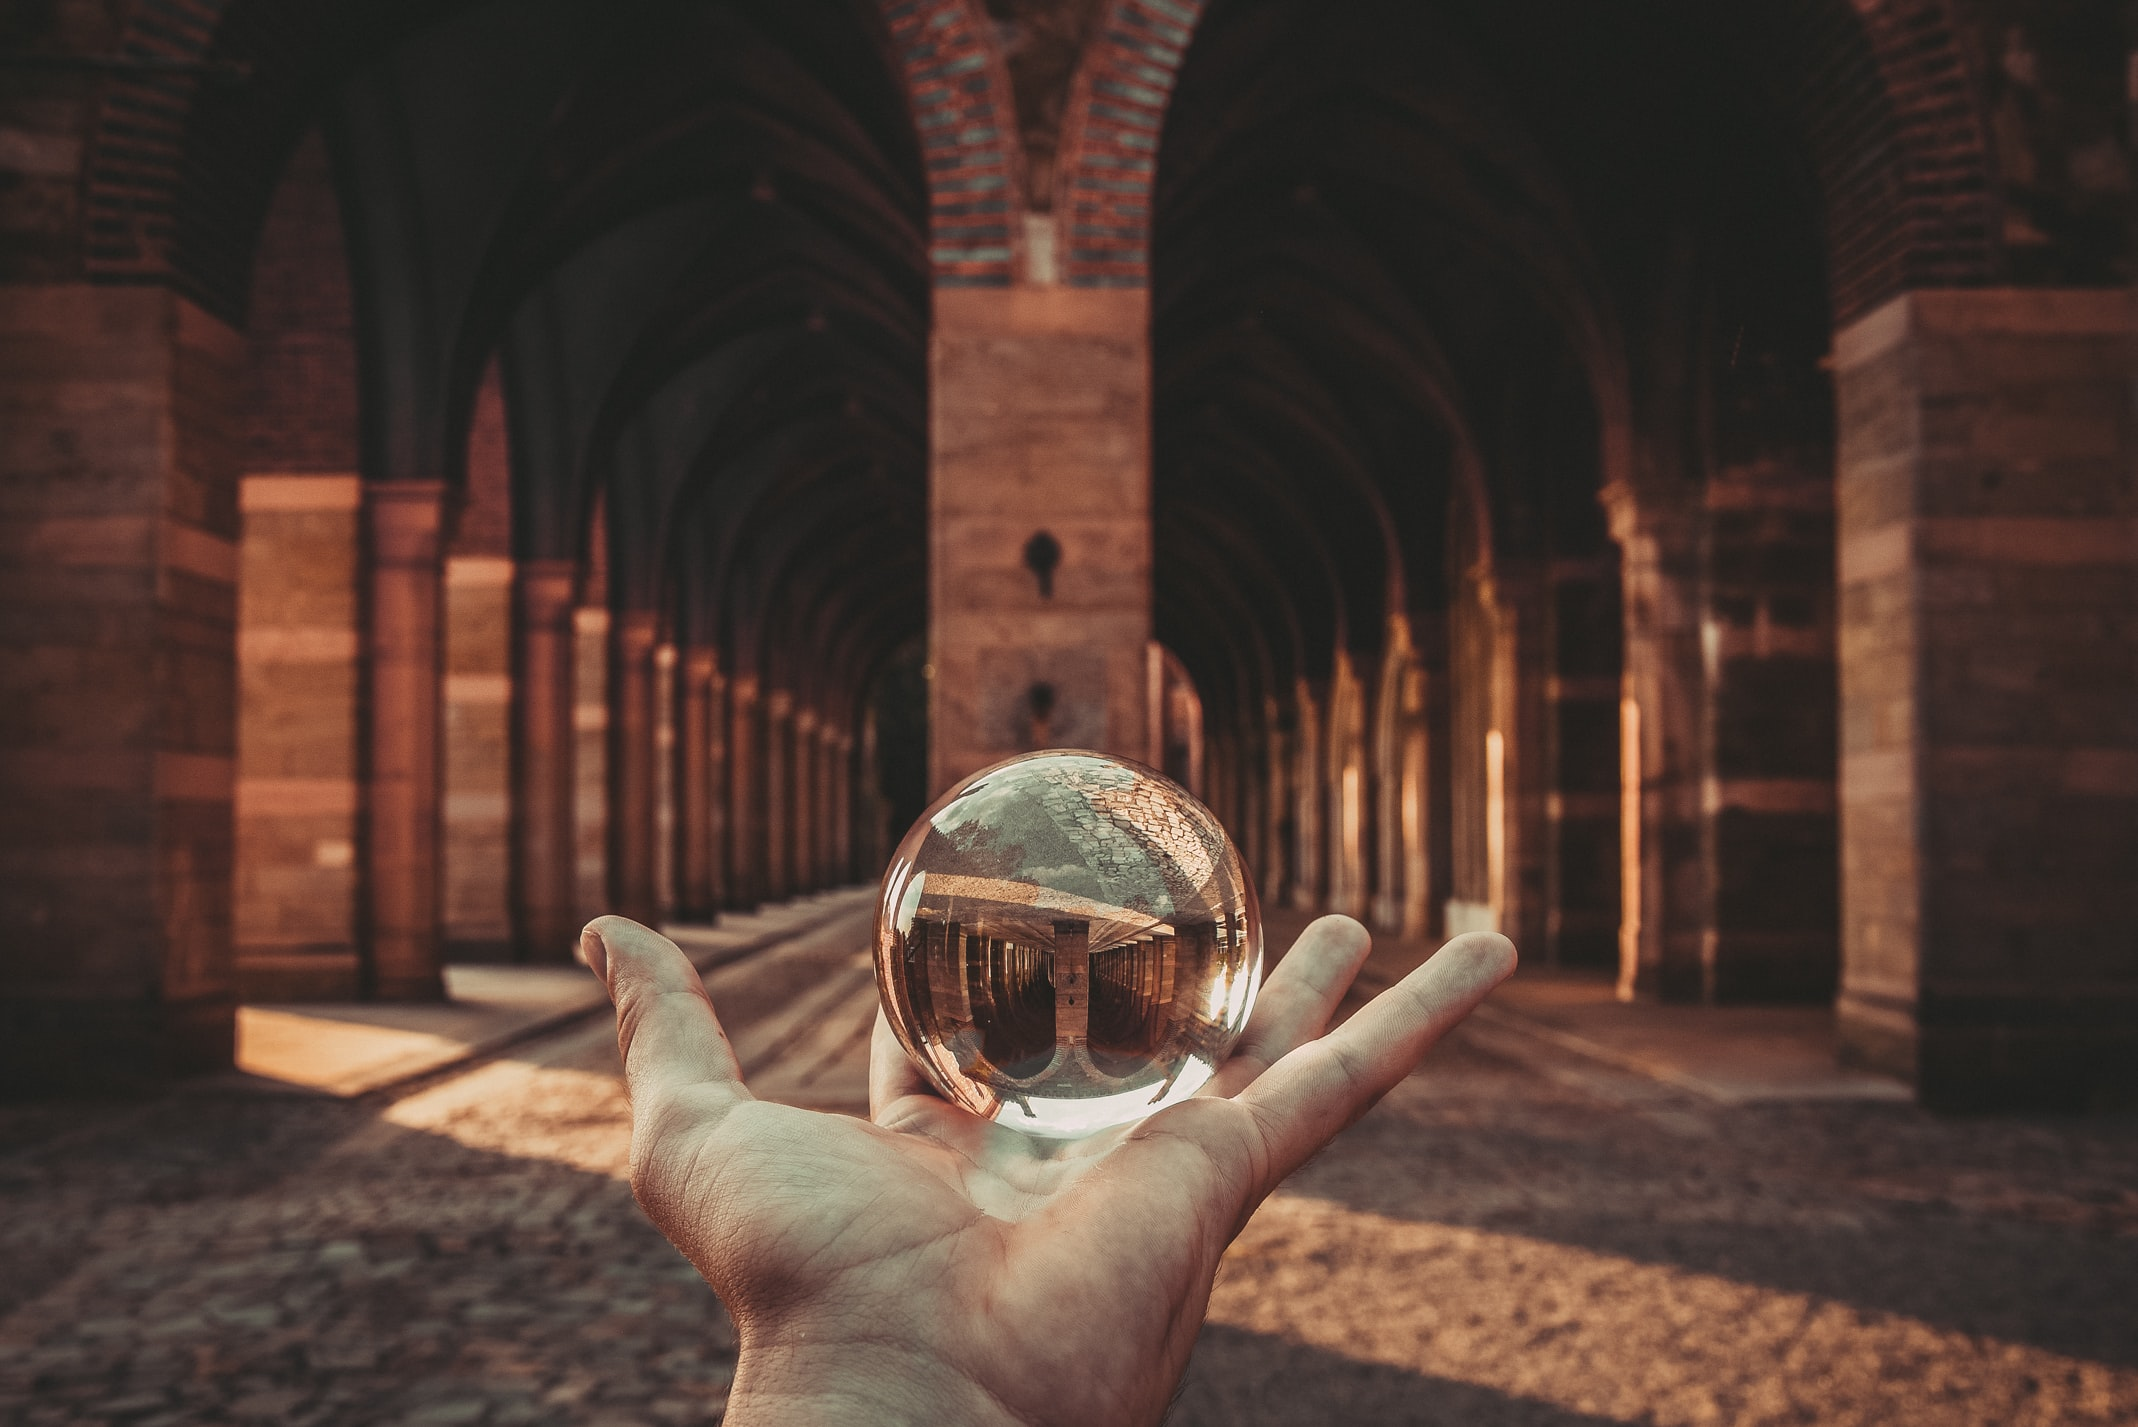 Hand holding a reflective glass orb near an arched hallway